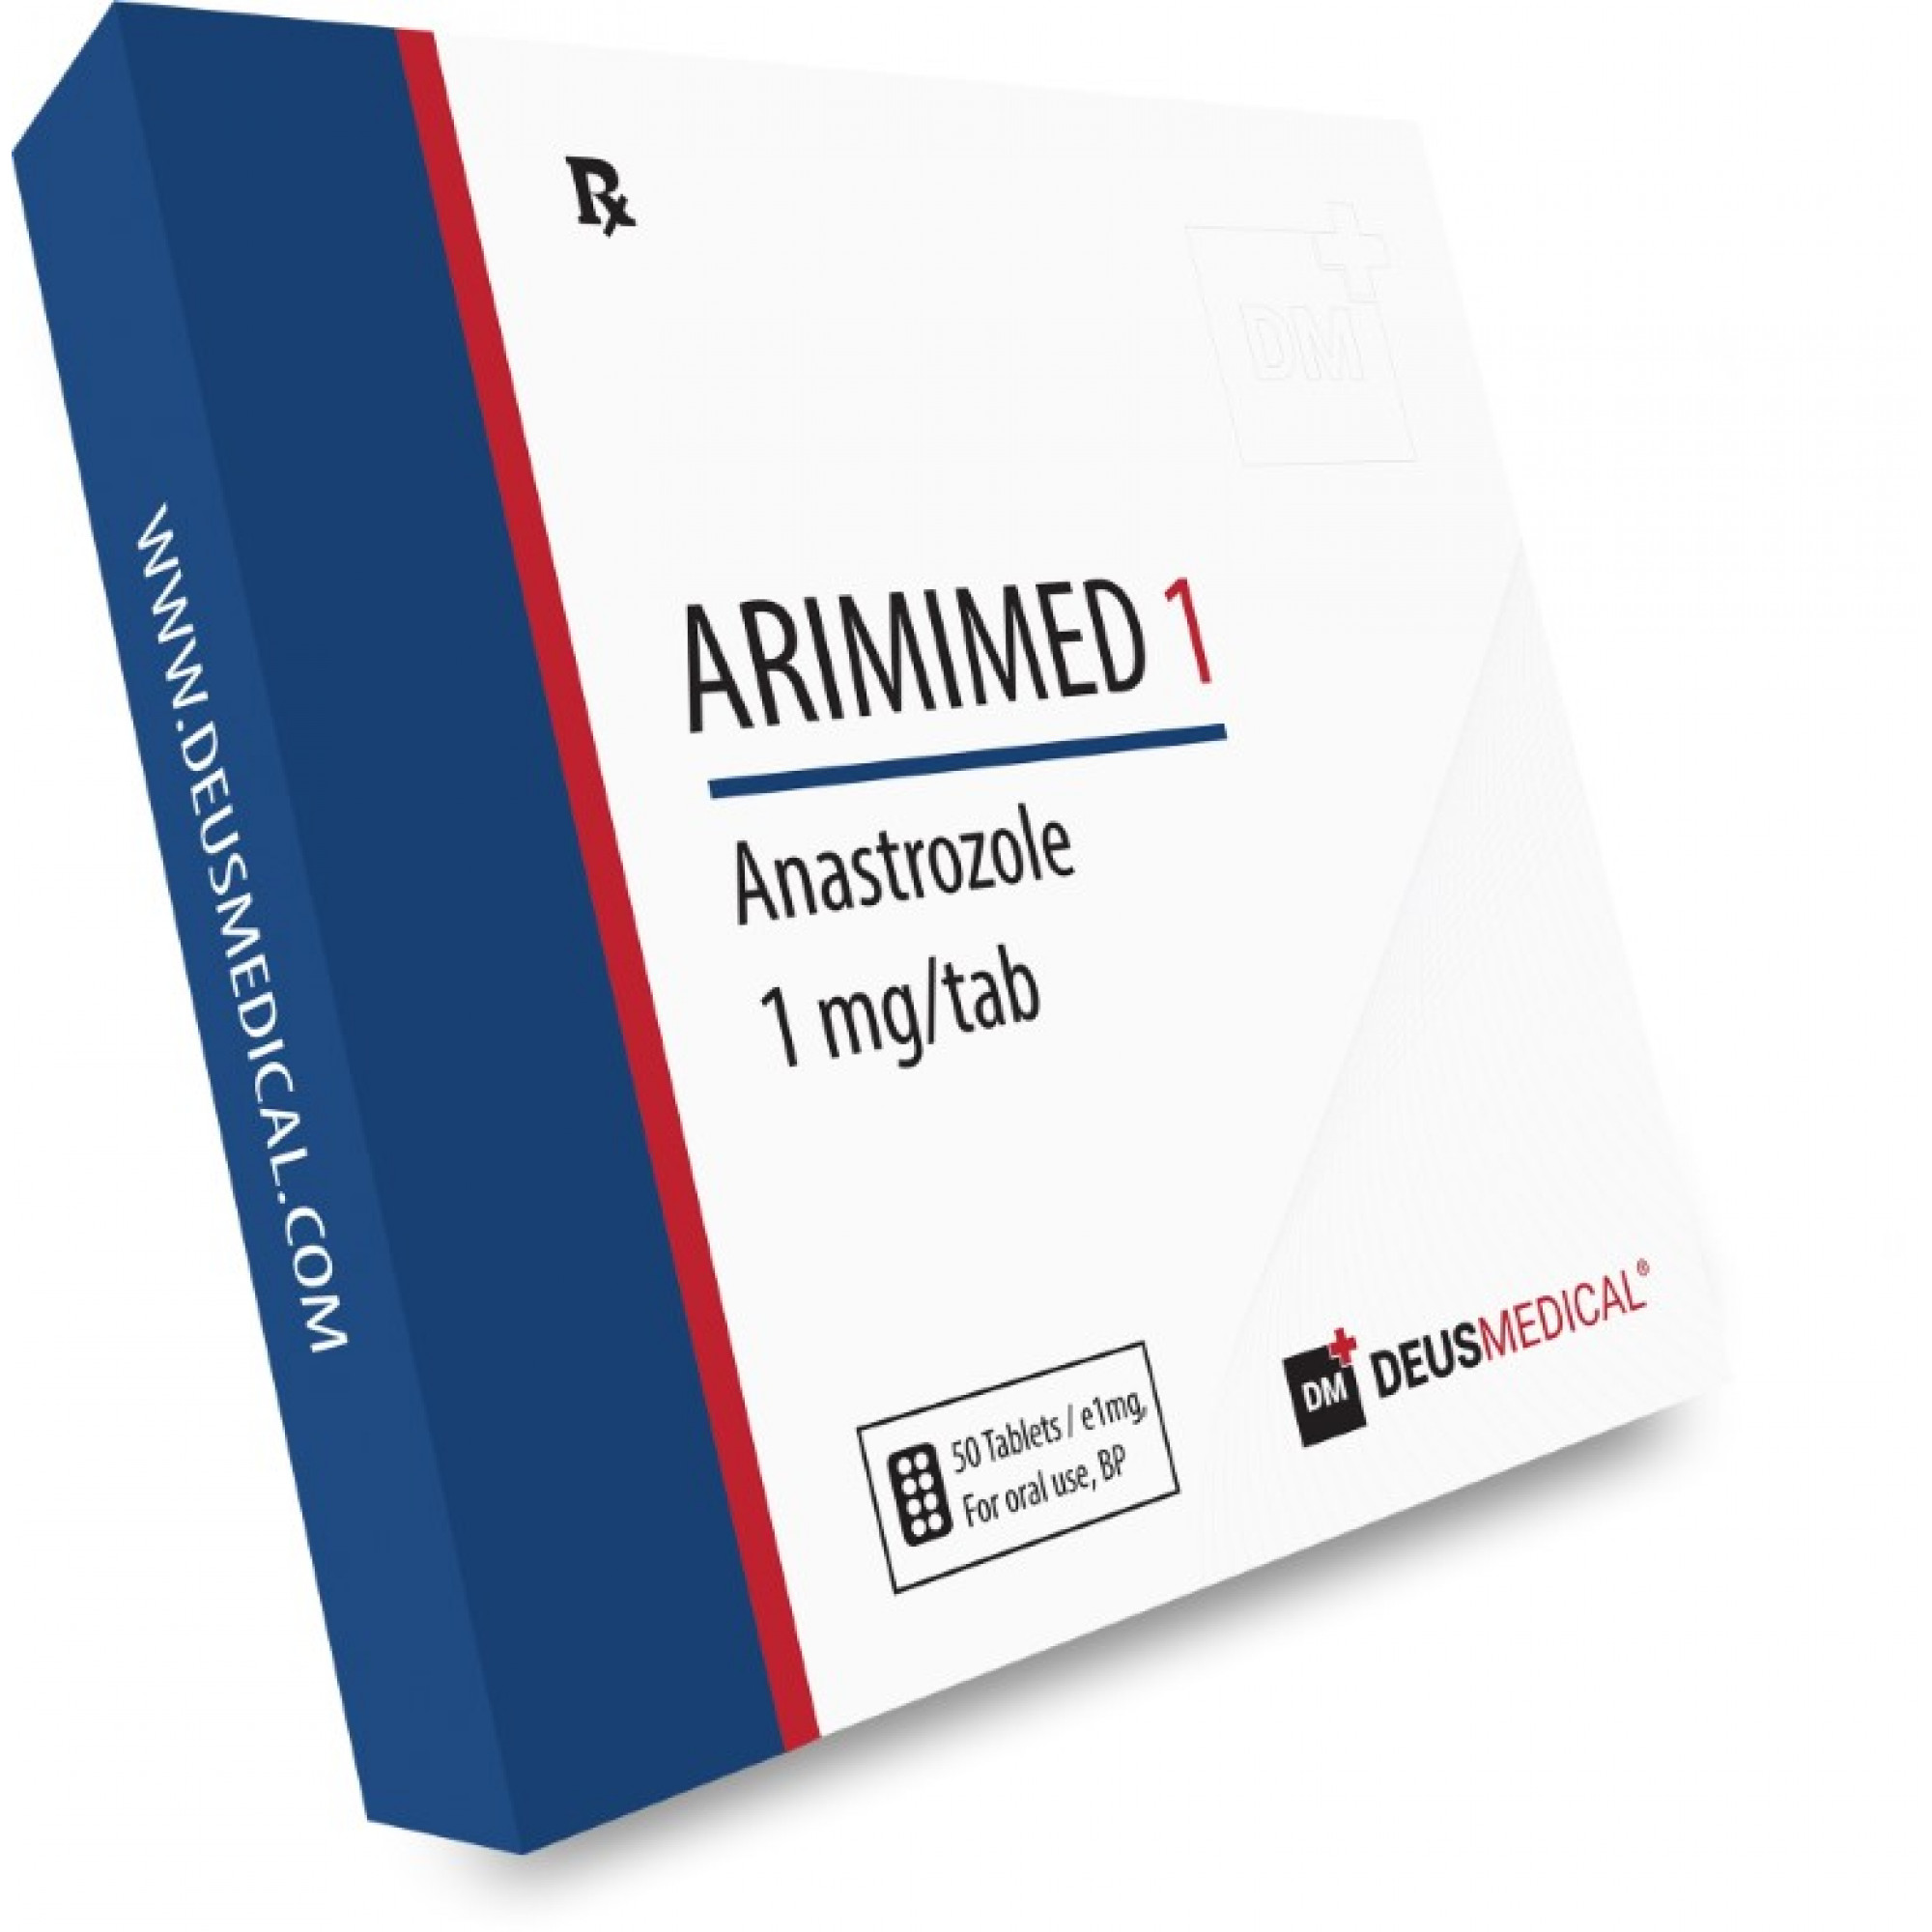 ARIMIMED 1 (Anastrozole), DEUS MEDICAL, BUY STEROIDS ONLINE - www.DEUSPOWER.com